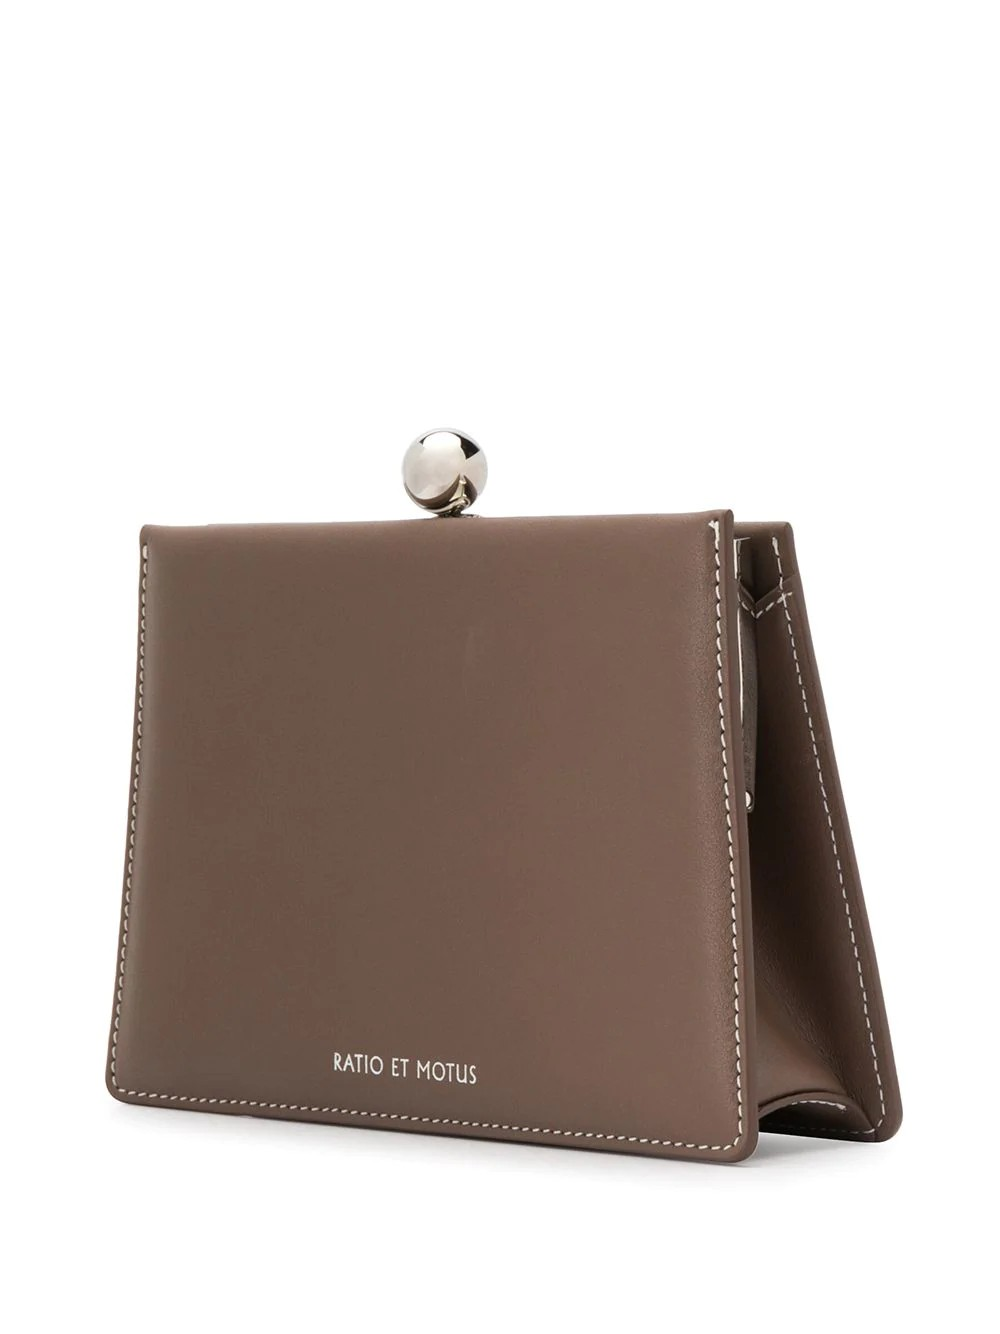 MINI TWIN Customized brass frame closure with detachable shoulder strap  - 60% Cowhide Leather, 40% Vegan Leather